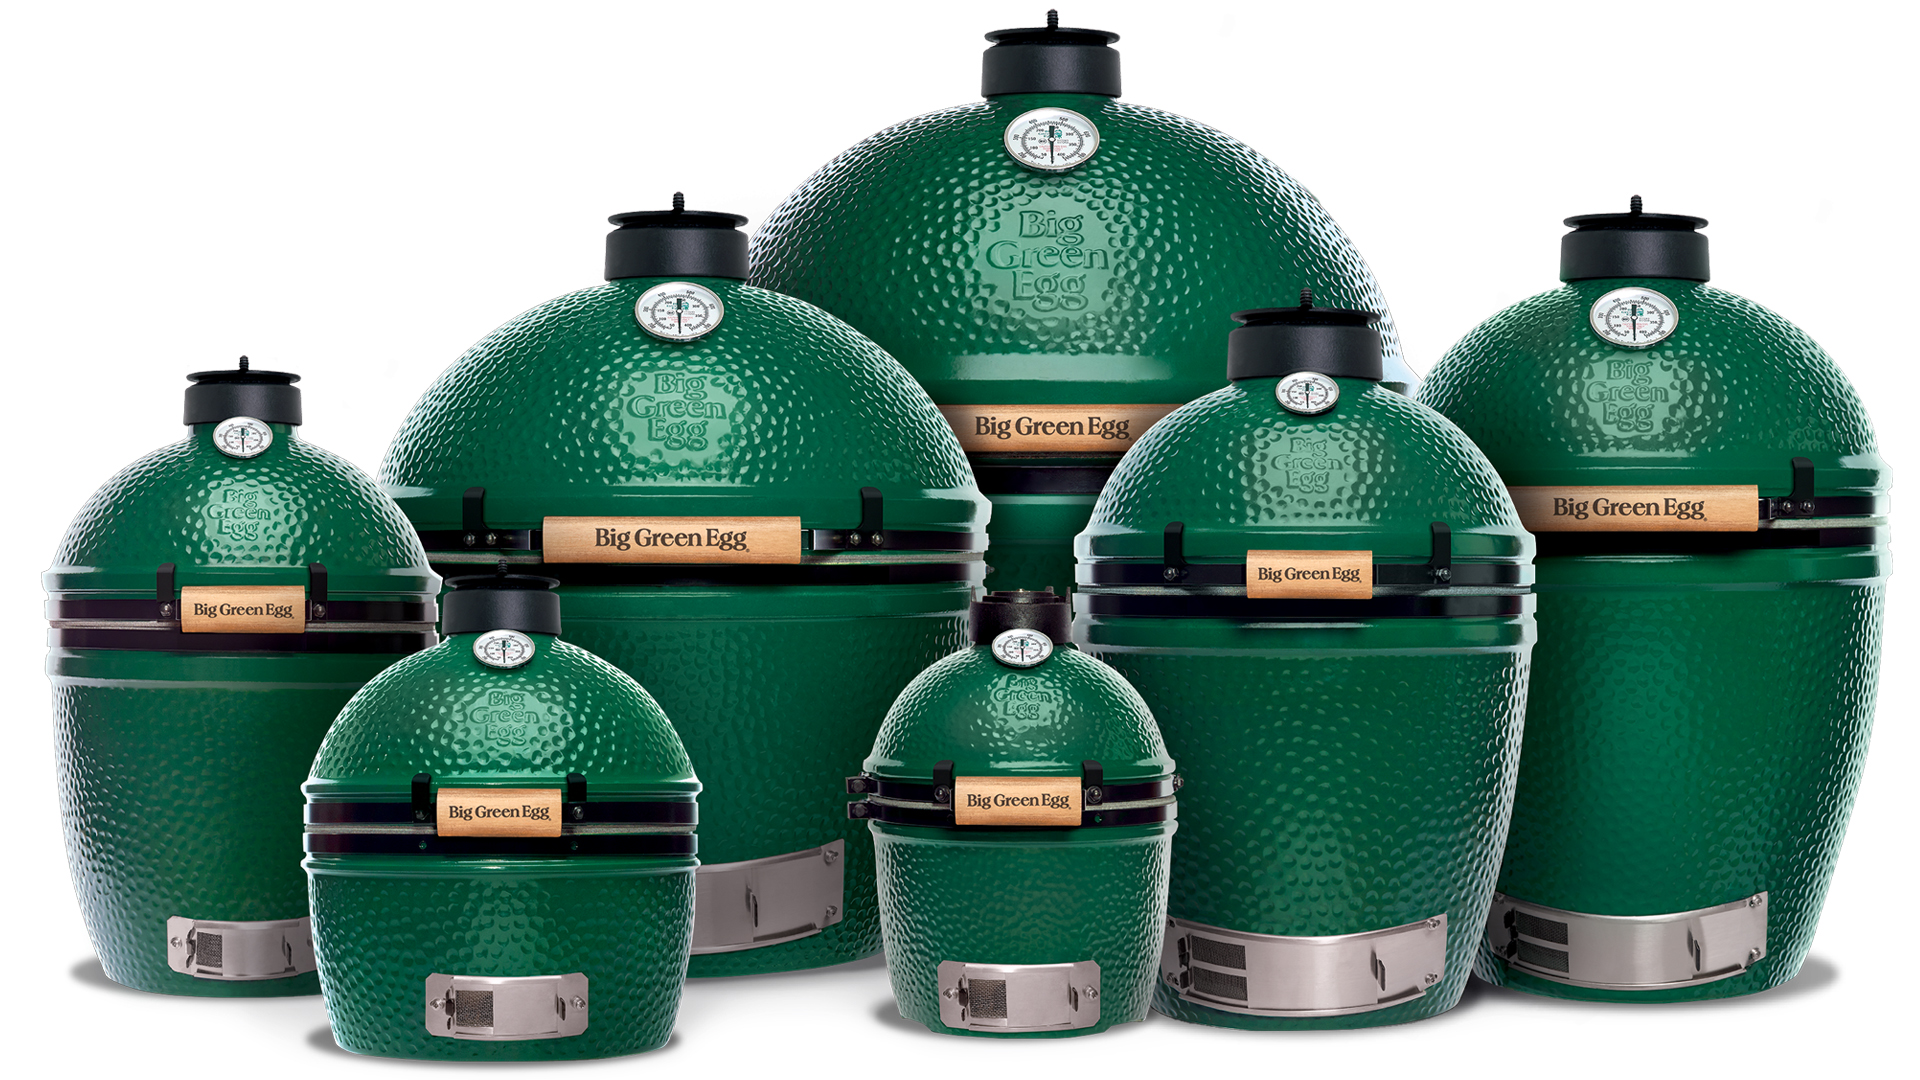 grille Big Green Egg